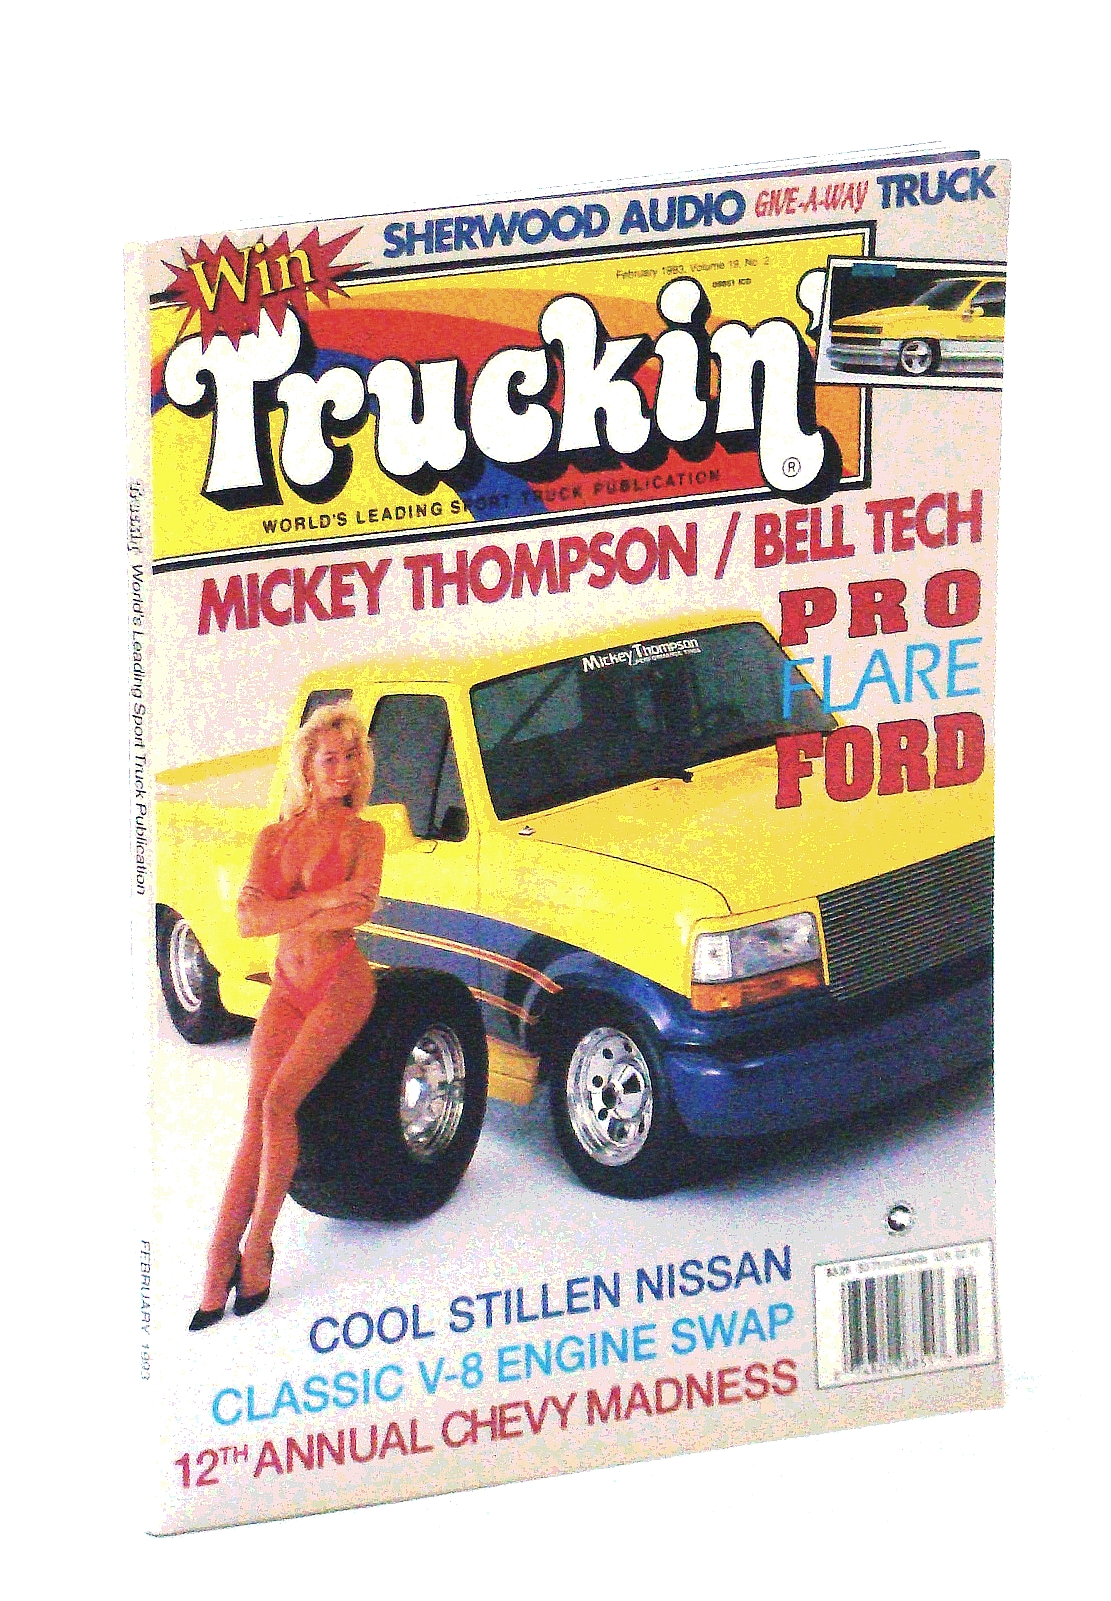 Image for Truckin' Magazine, February [Feb.] 1993: Cover Photo of Mickey Thompson / Bell Tech Pro-Flare Ford with Illene Voss